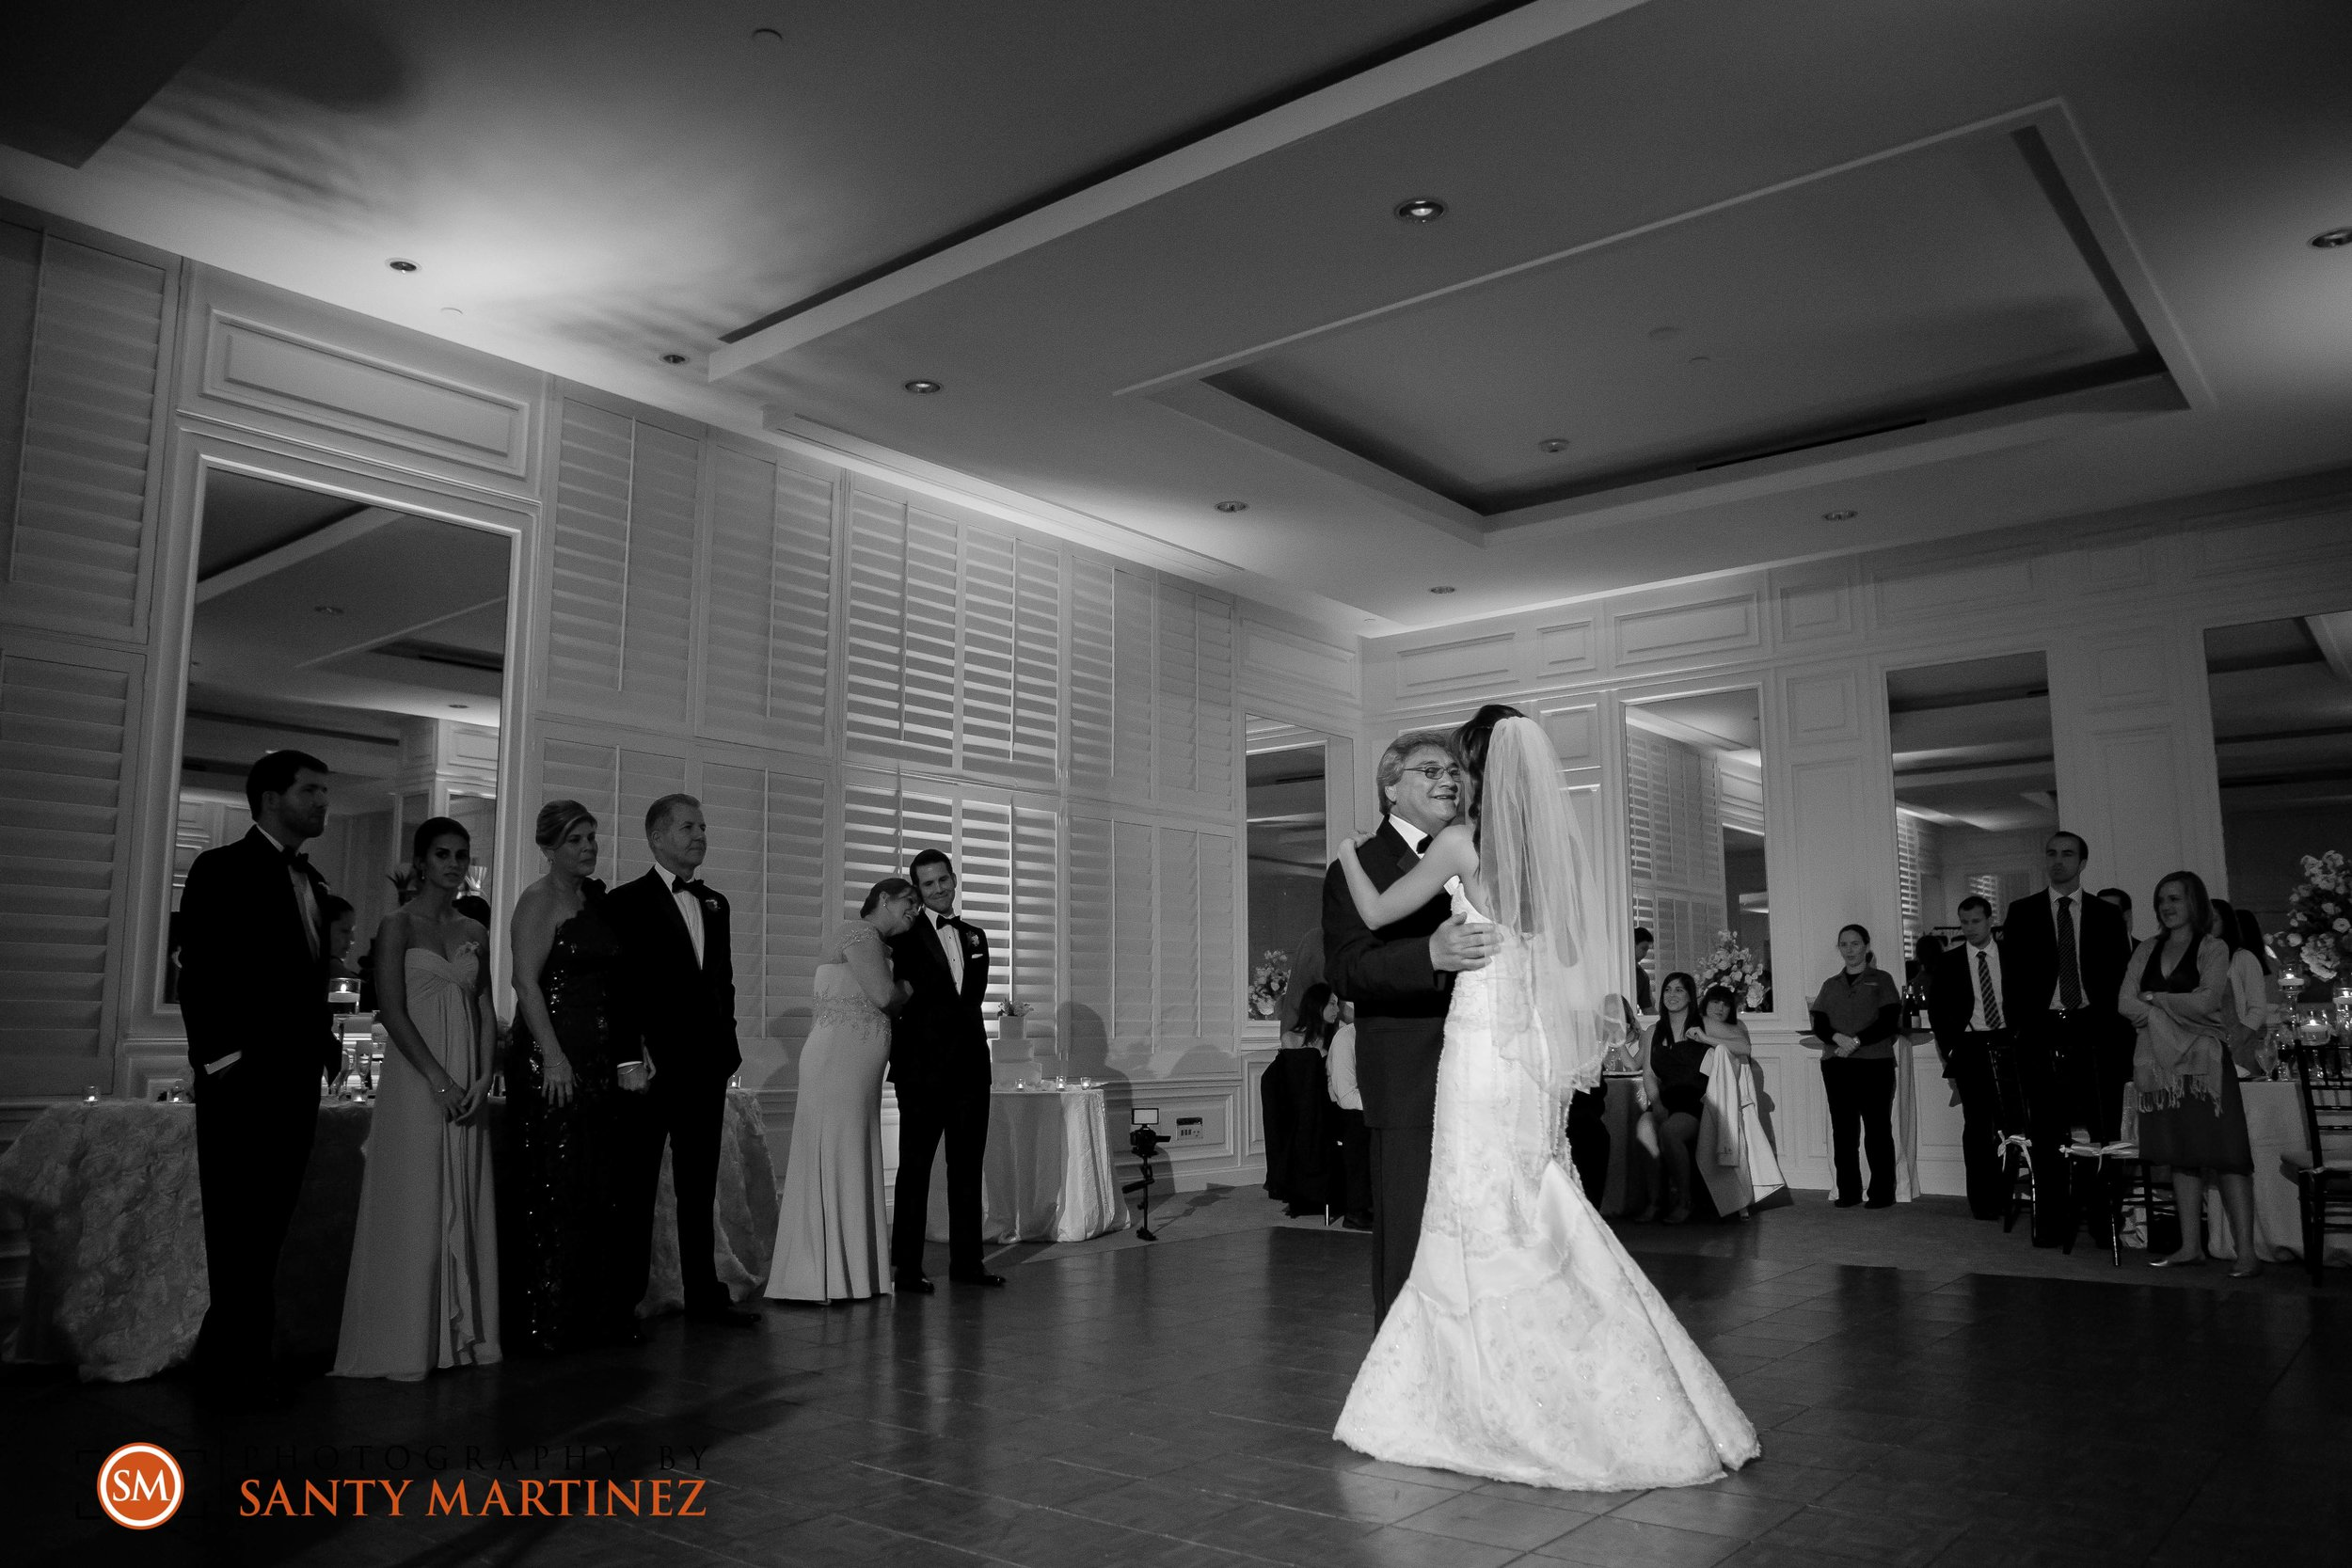 Miami Wedding Photographer - Santy Martinez -35.jpg